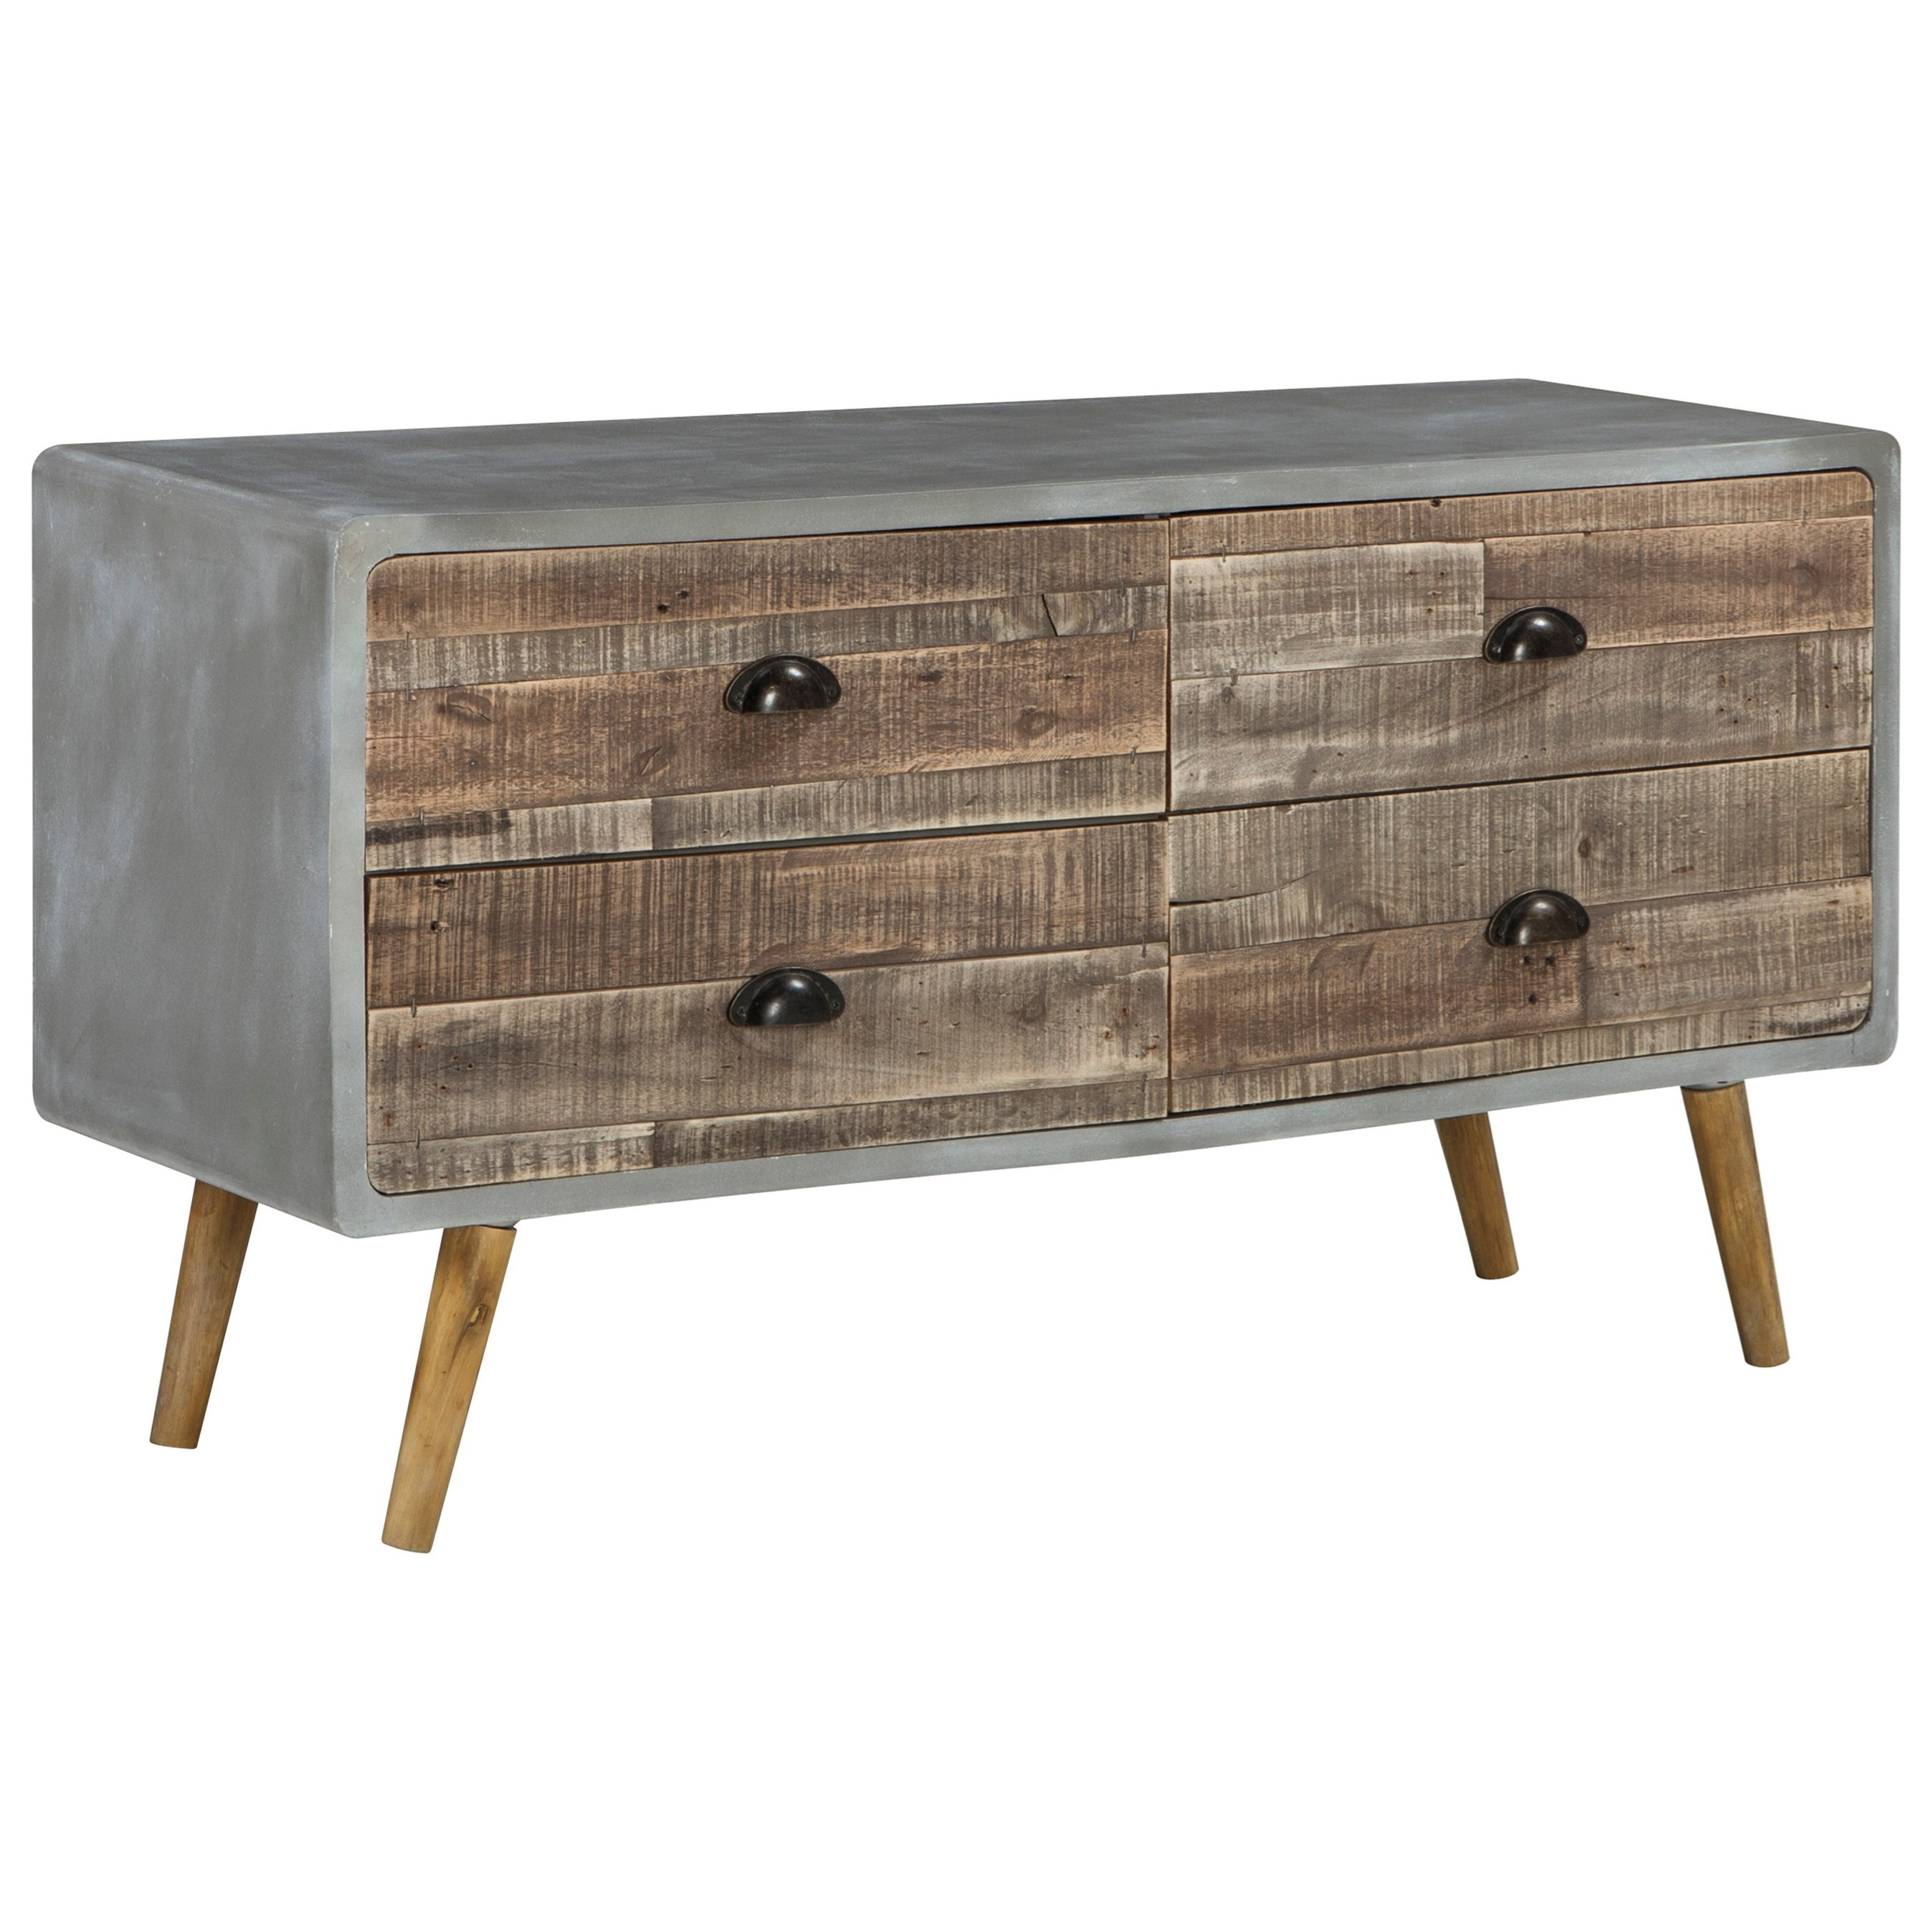 Signature Design By Ashley Camp Ridge Sofa Table   Item Number: A4000007